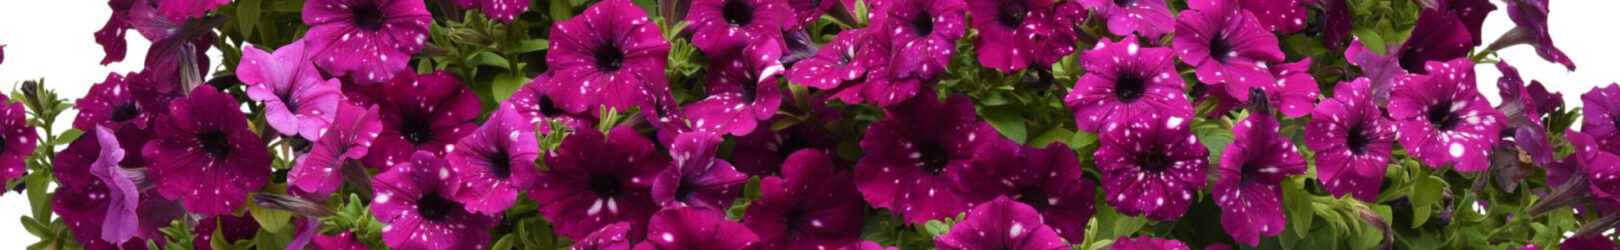 Nemesia Juicy Fruit Cherry on Ice